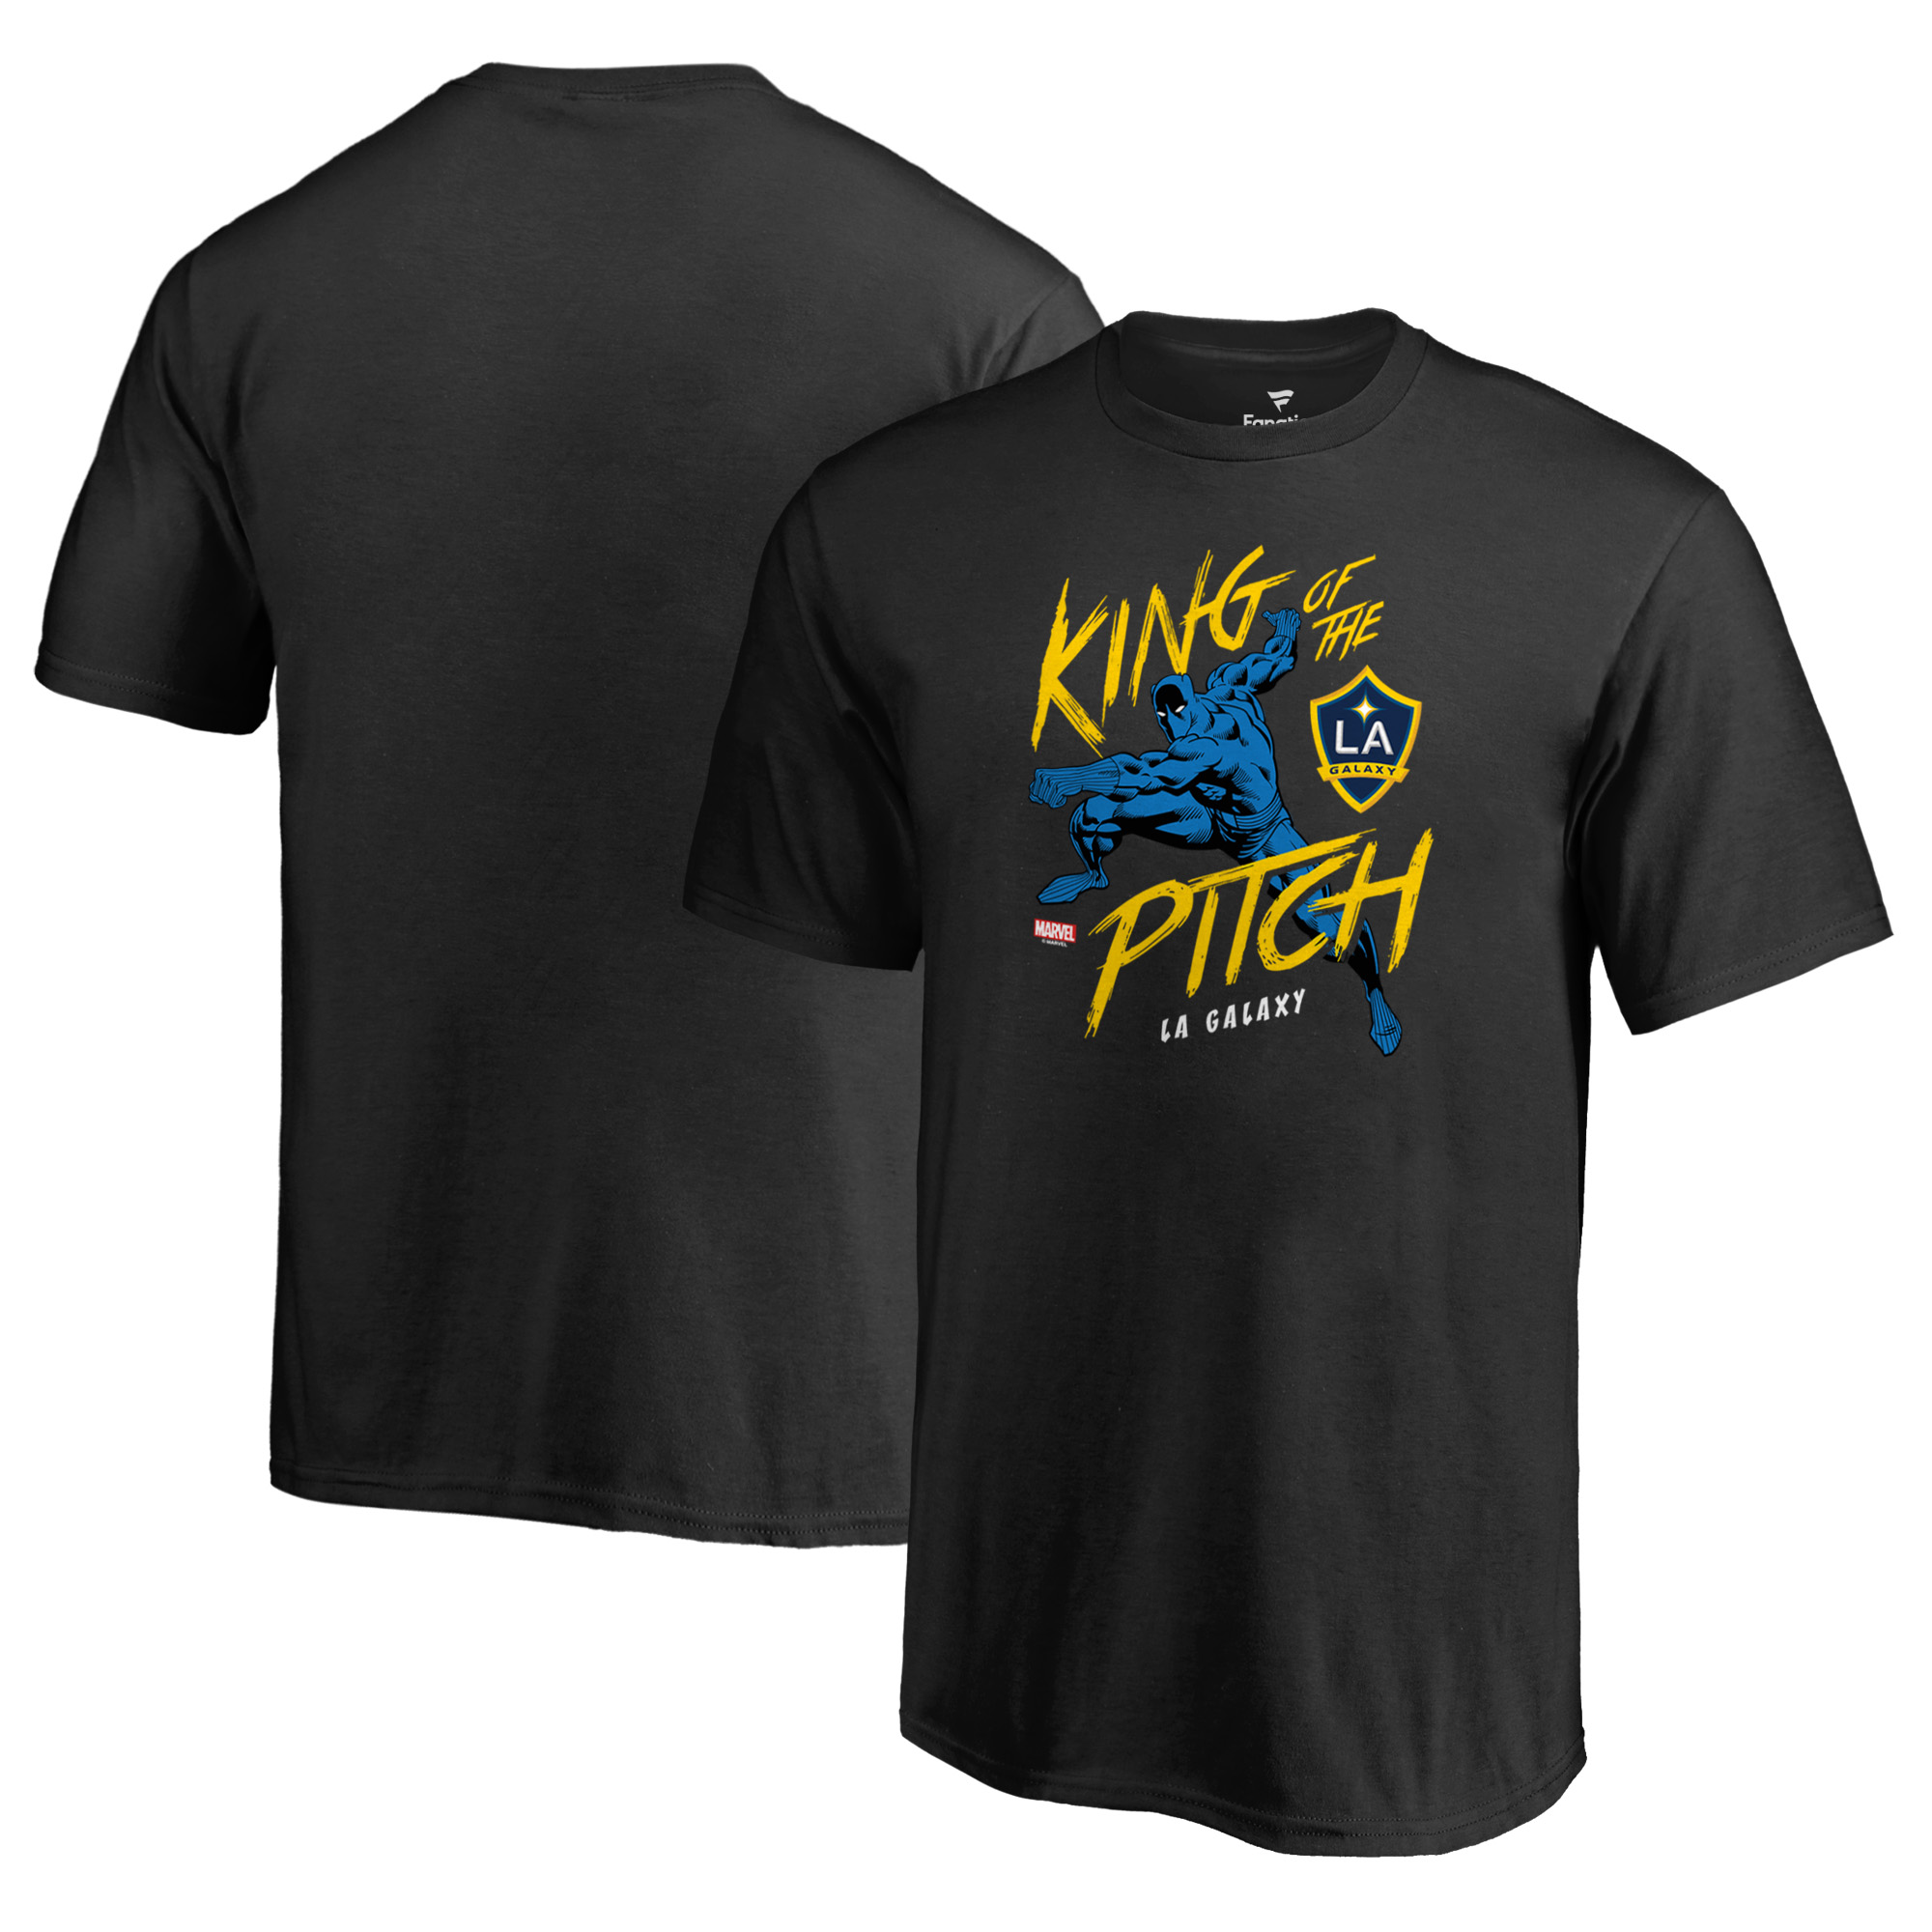 LA Galaxy Fanatics Branded Youth MLS Marvel Black Panther King of the Pitch T-Shirt - Black